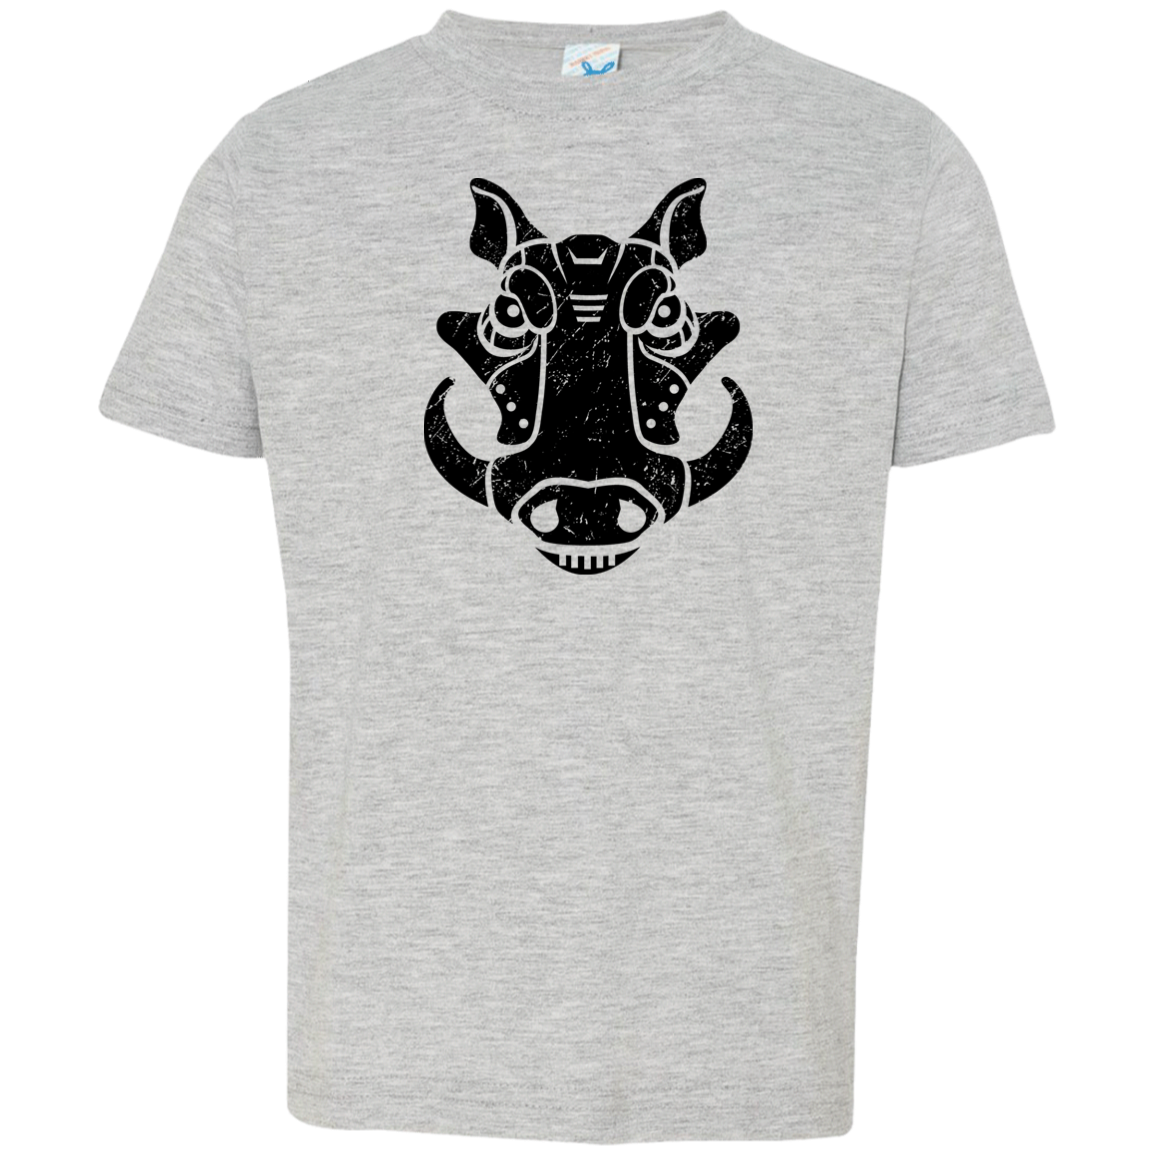 Black Distressed Emblem T-Shirt for Toddlers (Warthog/Bumper)